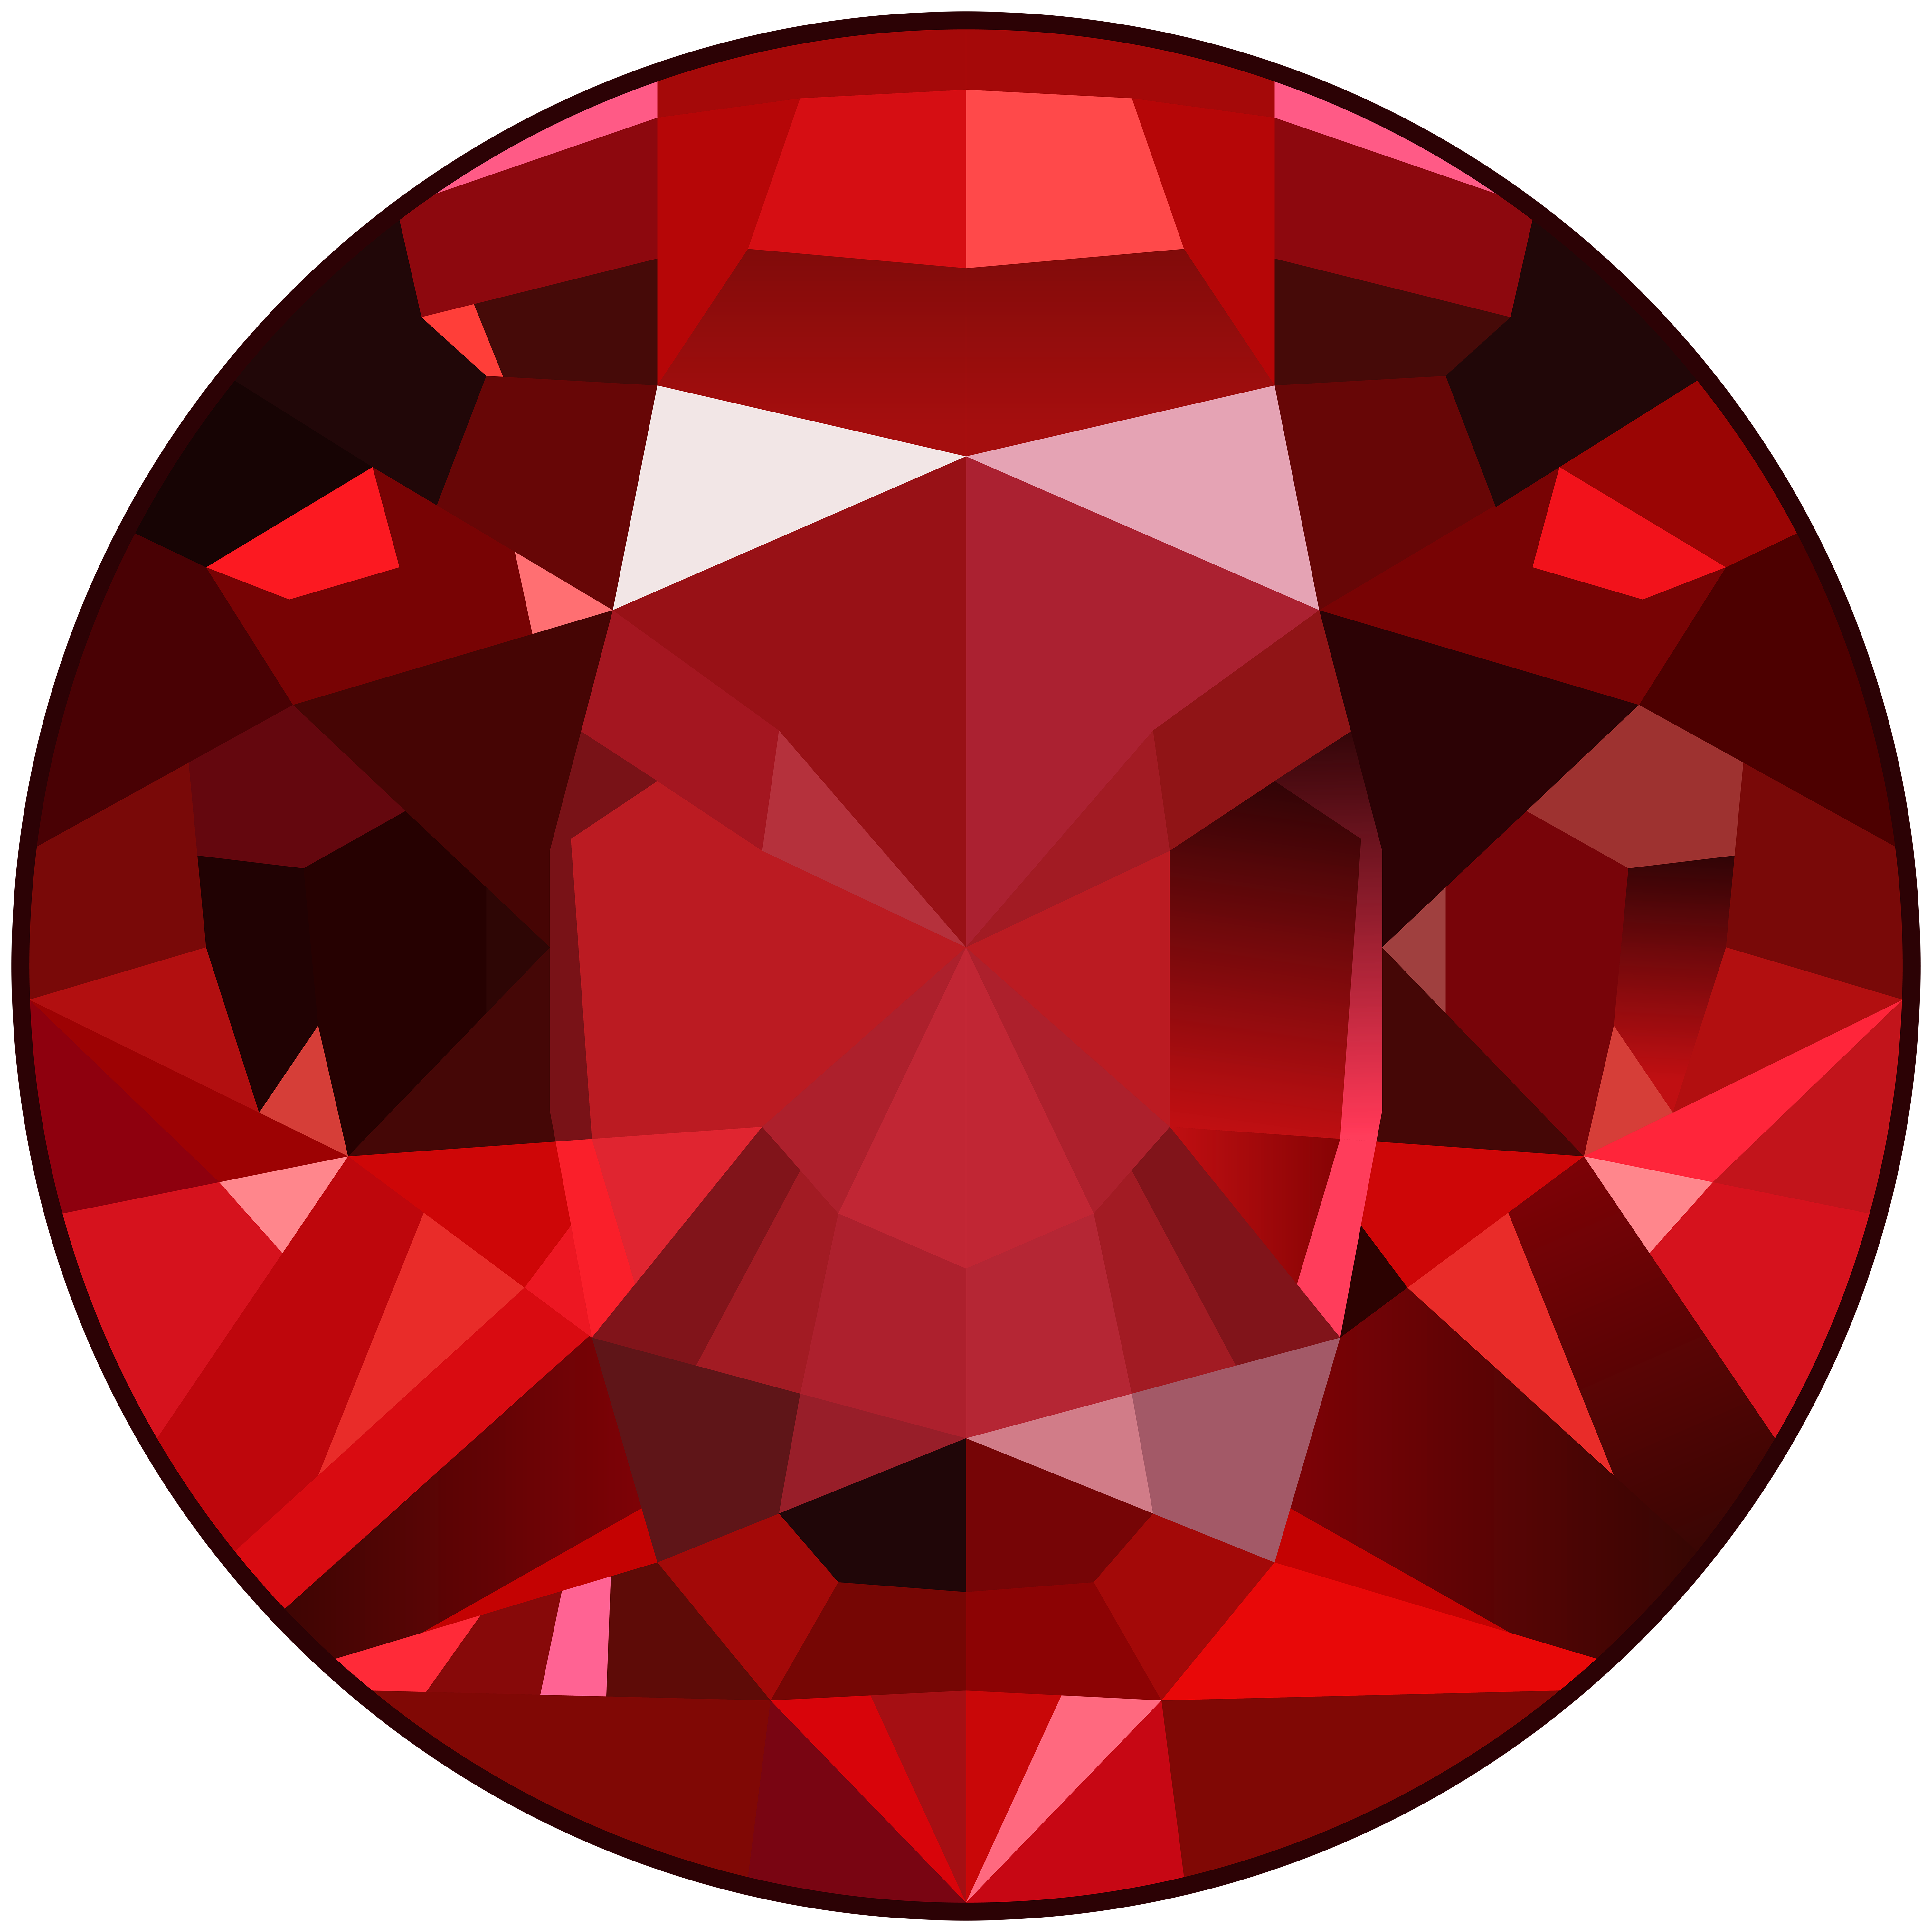 Gem clipart. Red png clip art